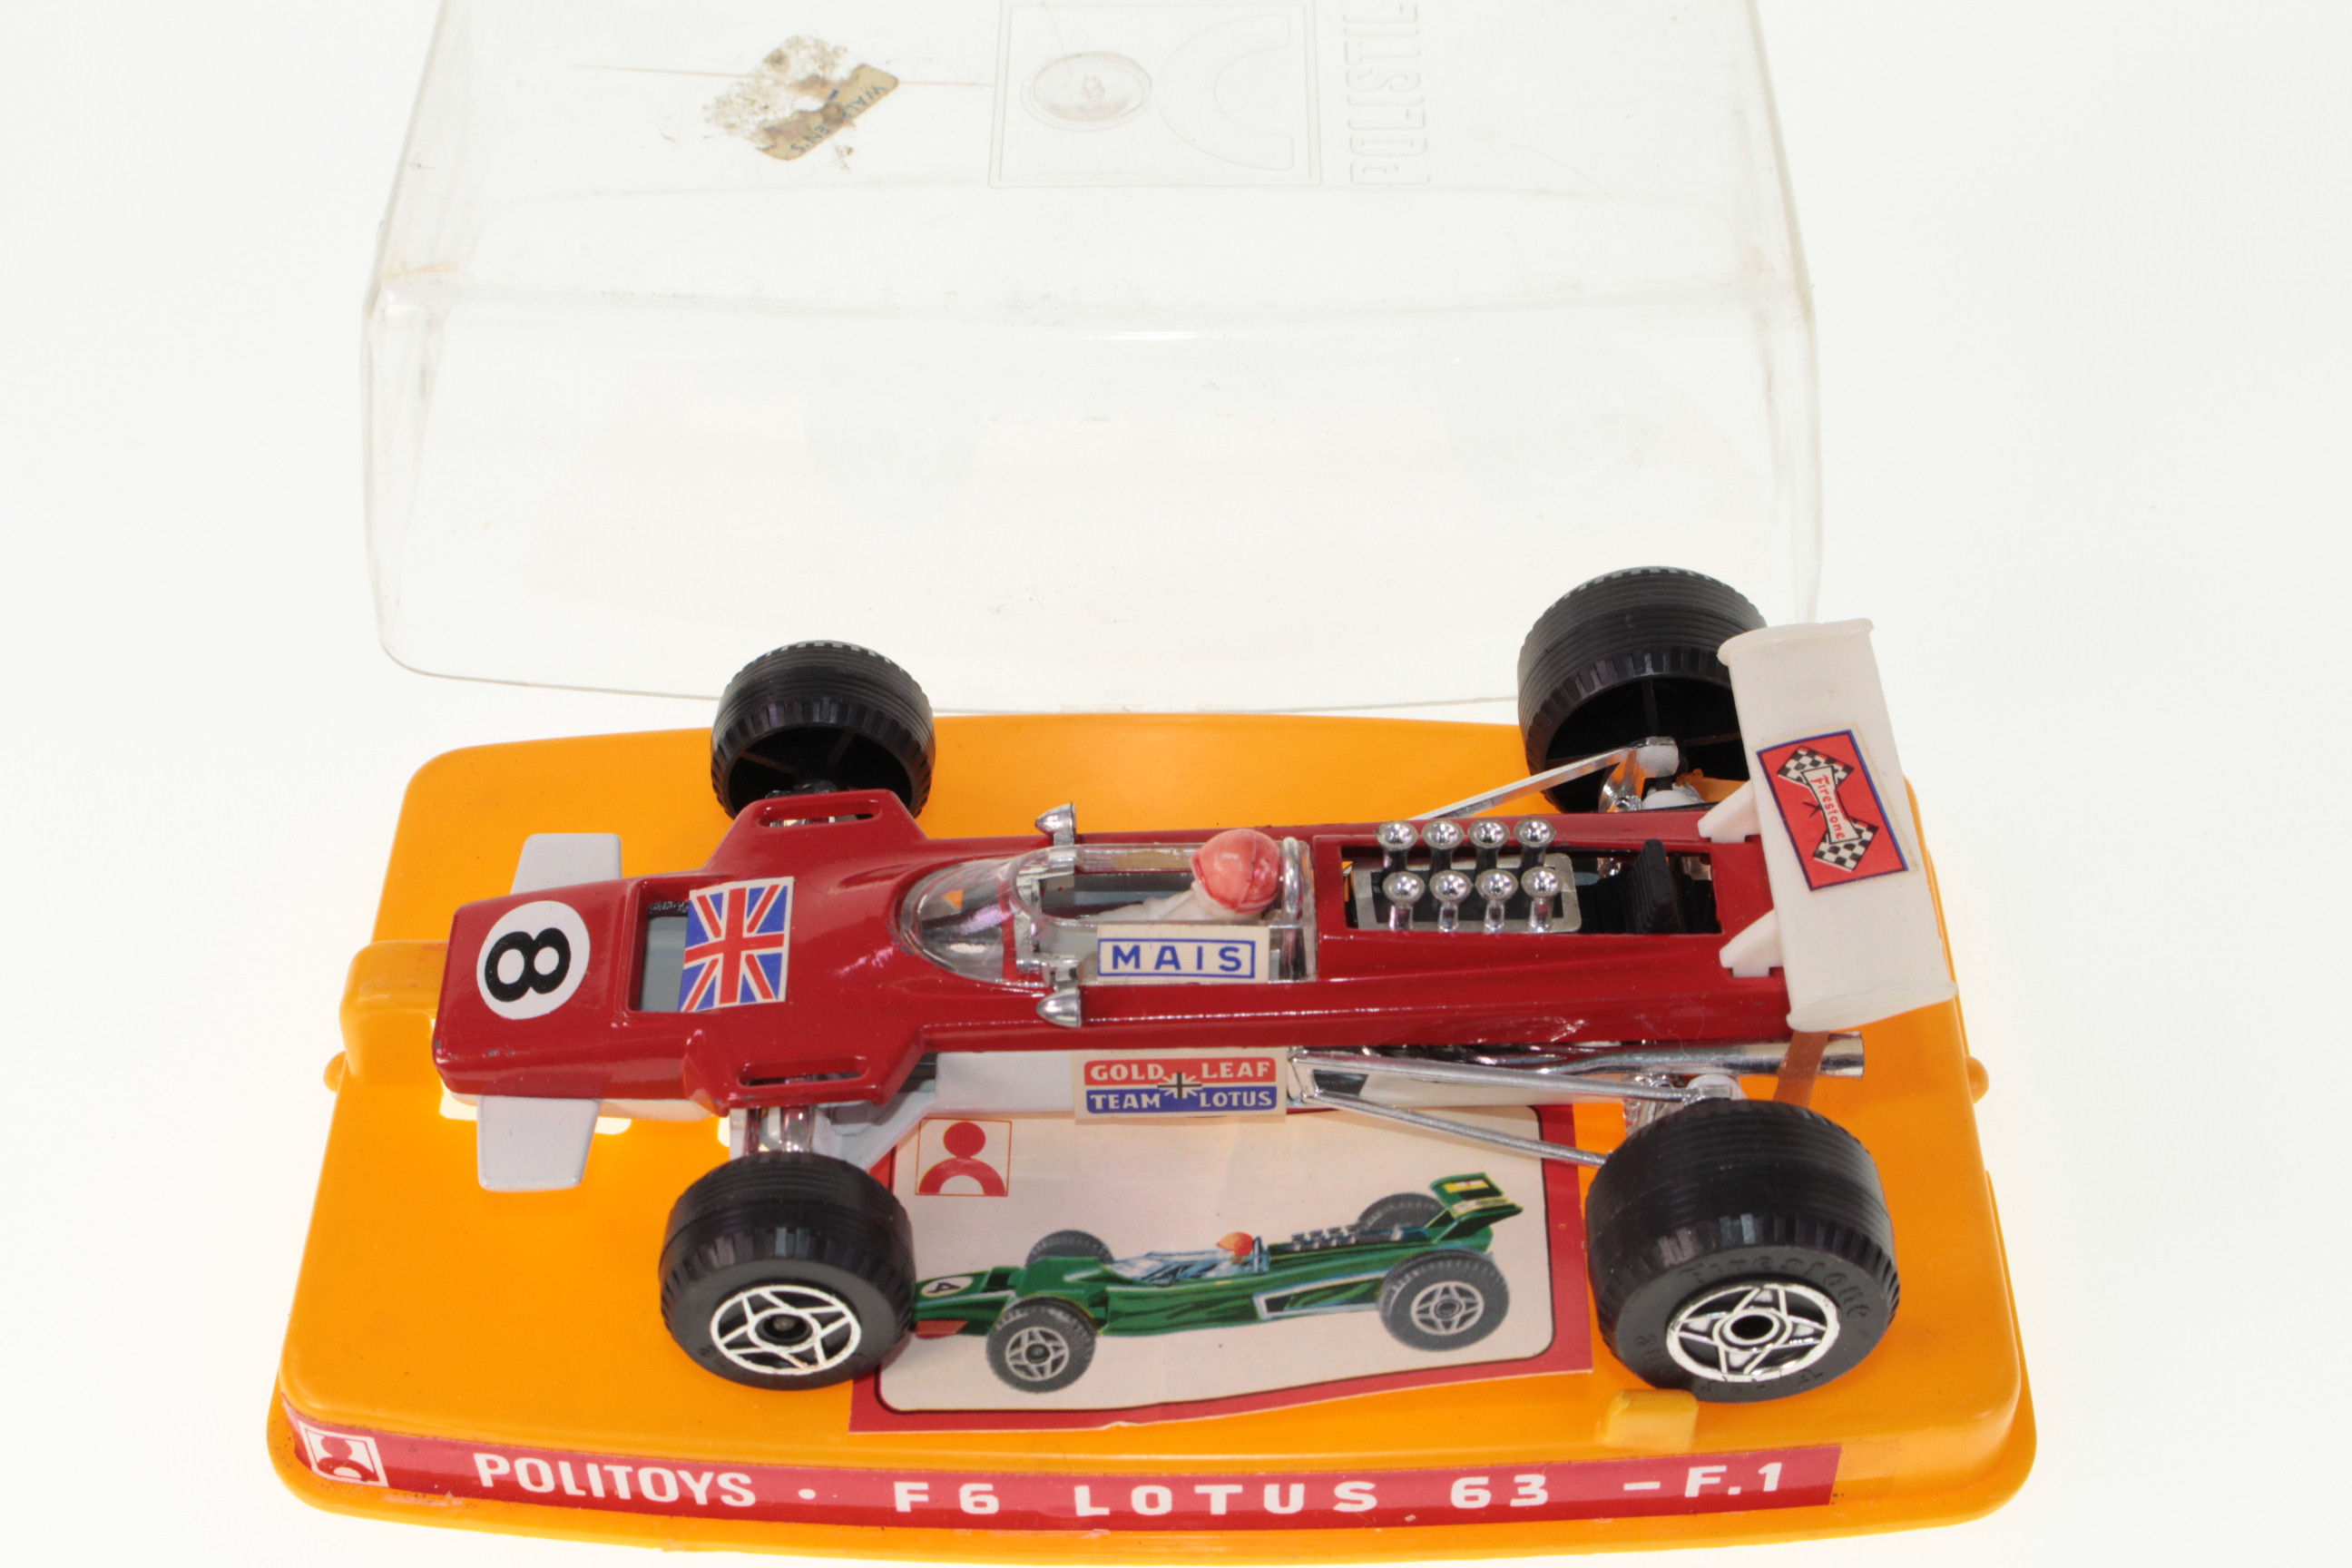 Politoys F6, Lotus 63 F1 - Buy, Sell, Review & Free Price Guide #25806